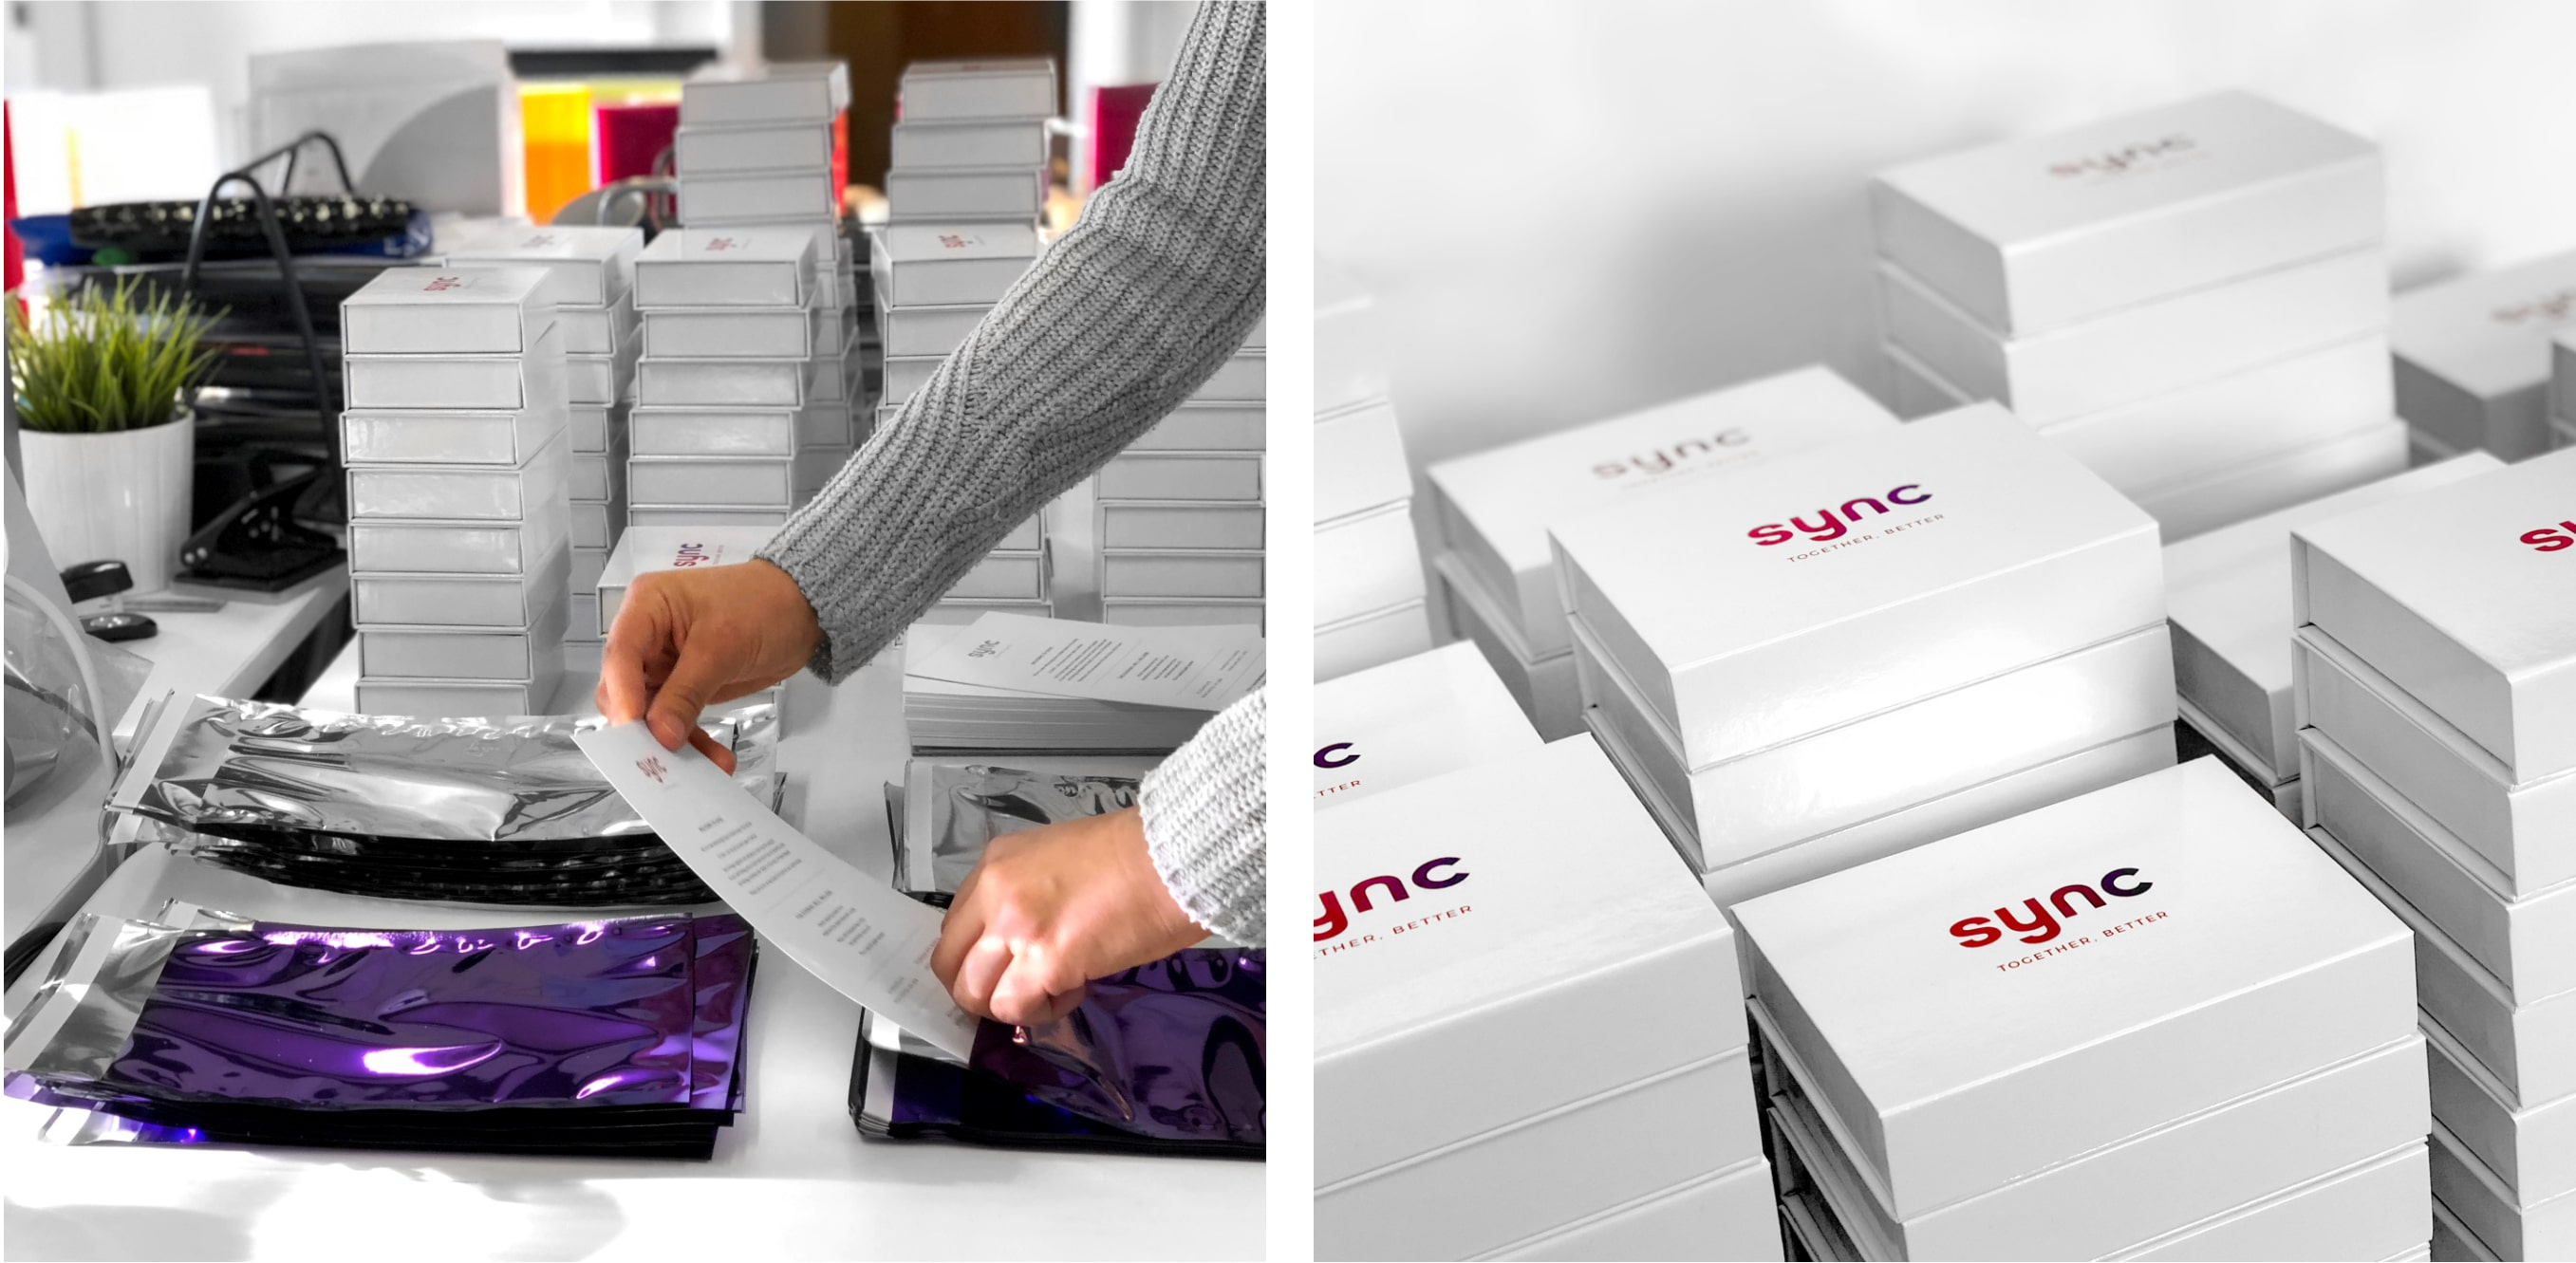 sync launch prep invites and boxes